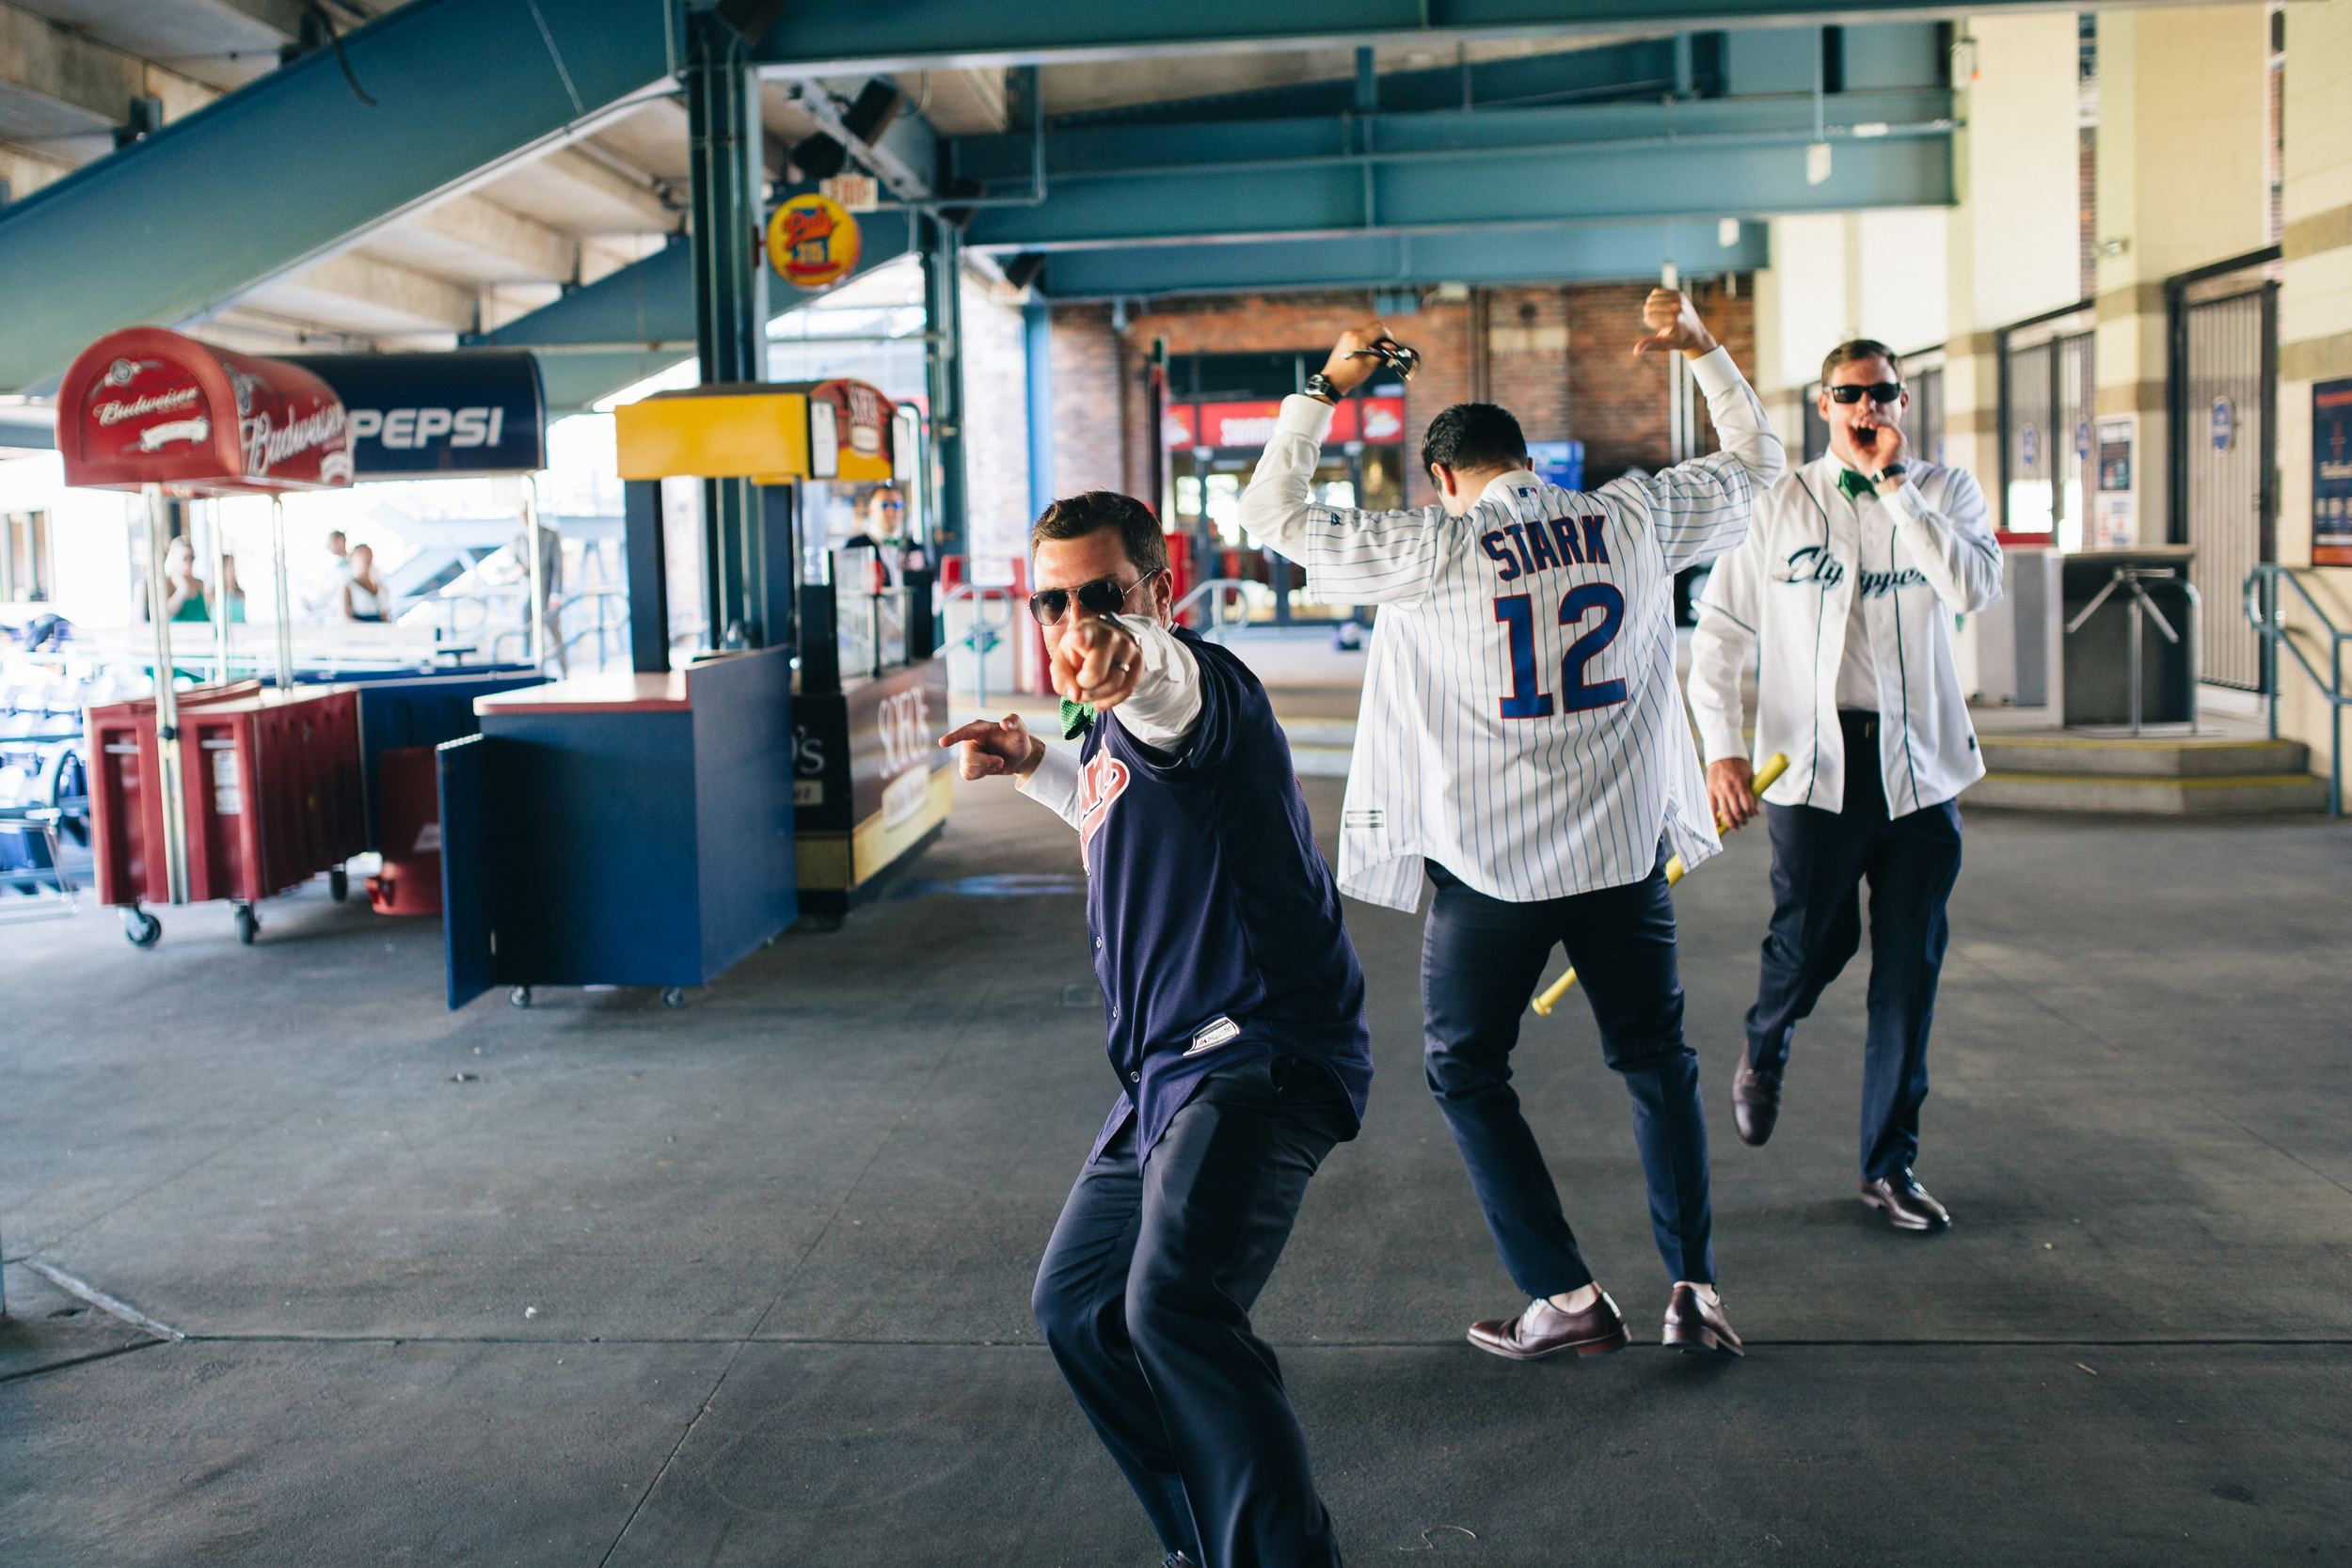 Groomsmen get baseball jerseys and take photos at Fifth Third Field.